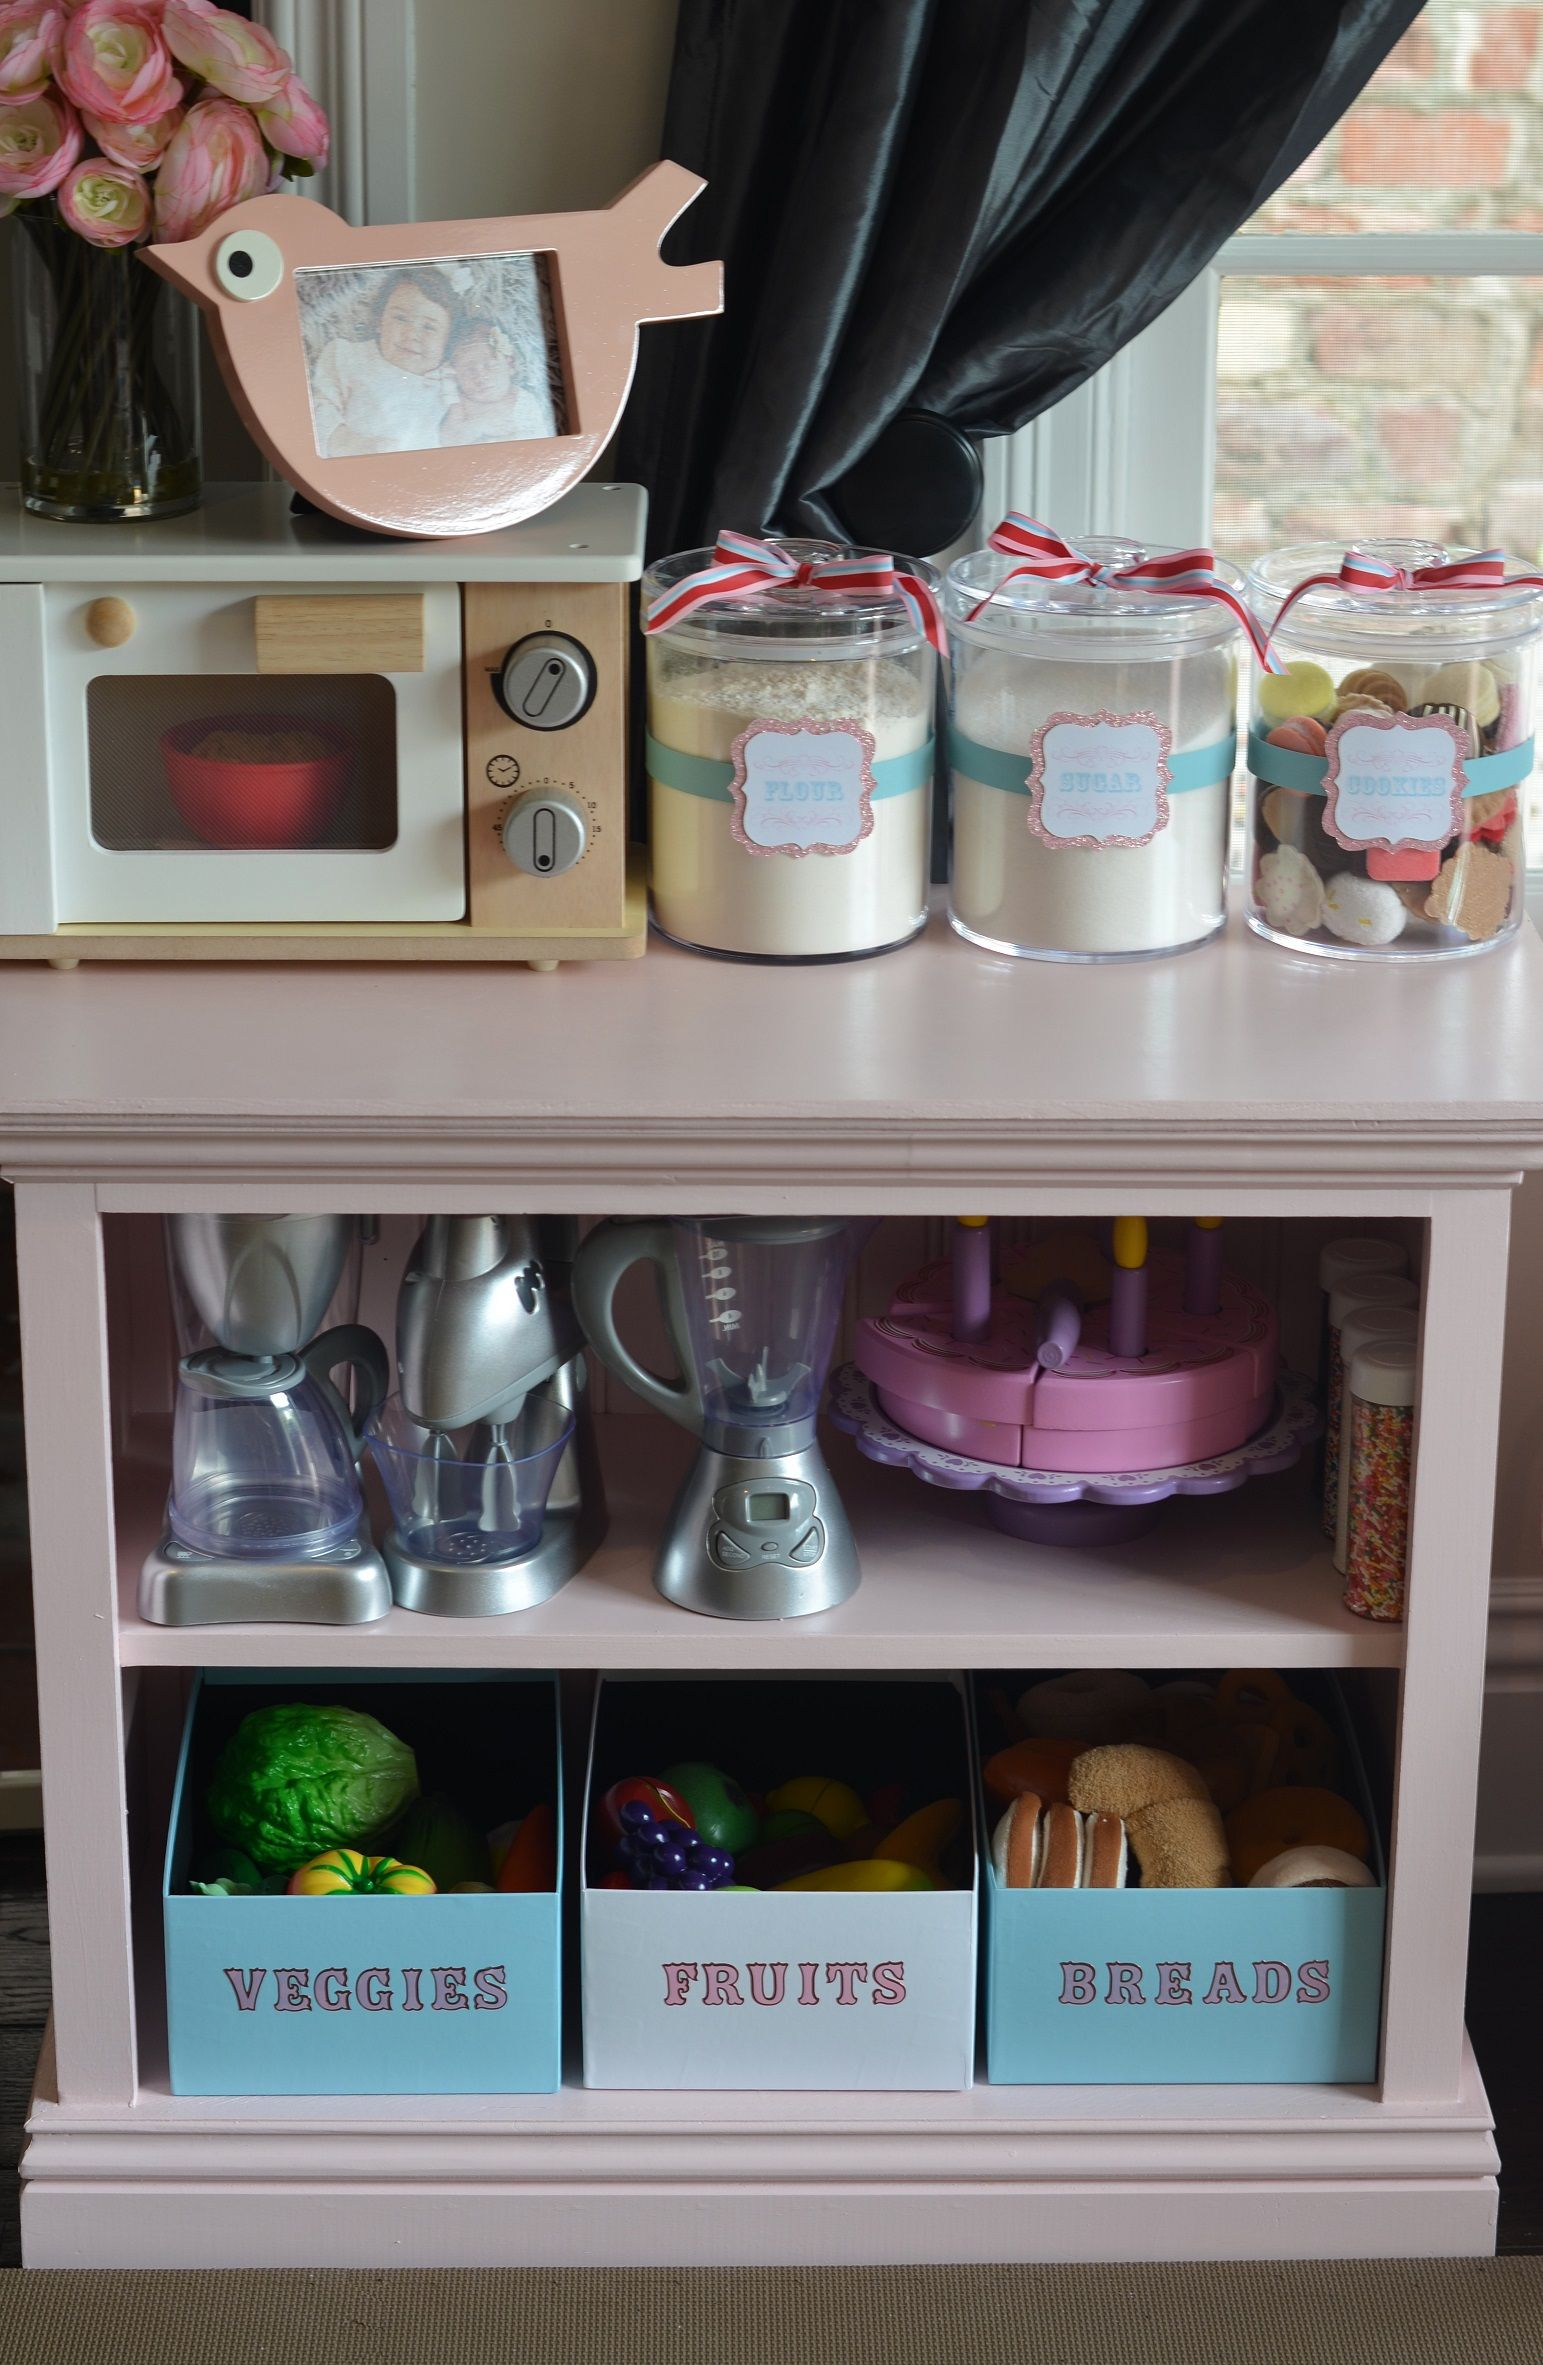 10 Kitchen And Home Decor Items Every 20 Something Needs: Play Kitchen- Love The Bins For Fruits And Veggies For